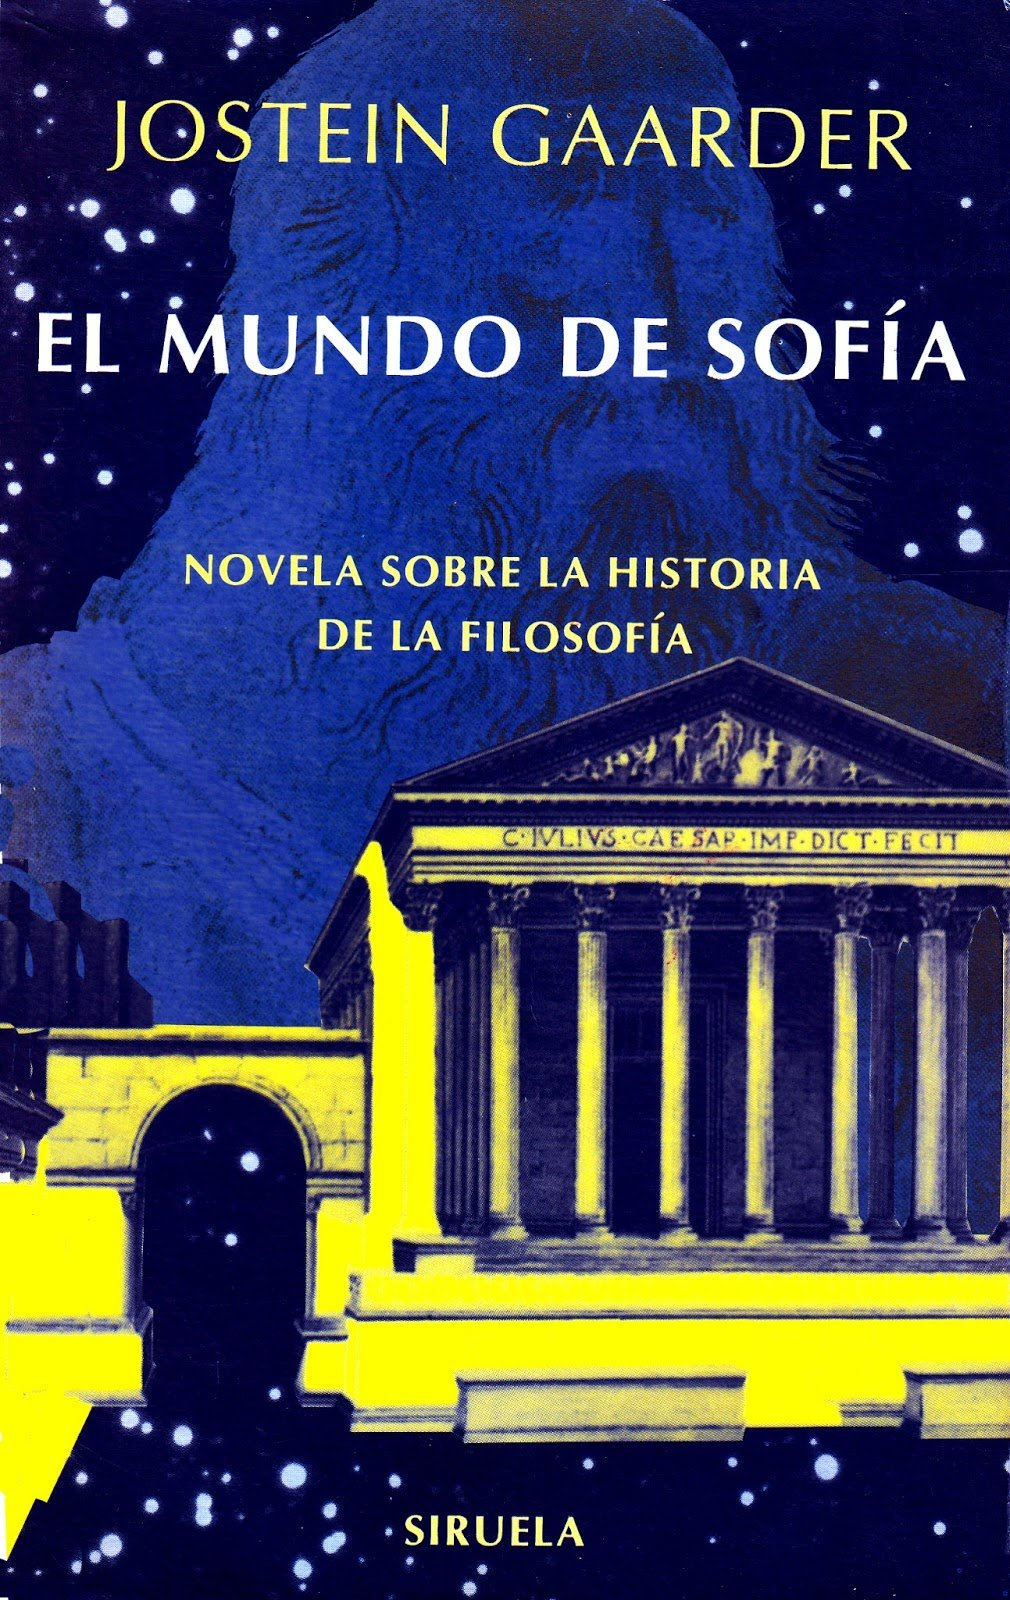 El-Mundo-de-Sofia-book-tag-nominaciones-blogs-blogger-opinion-interesantes